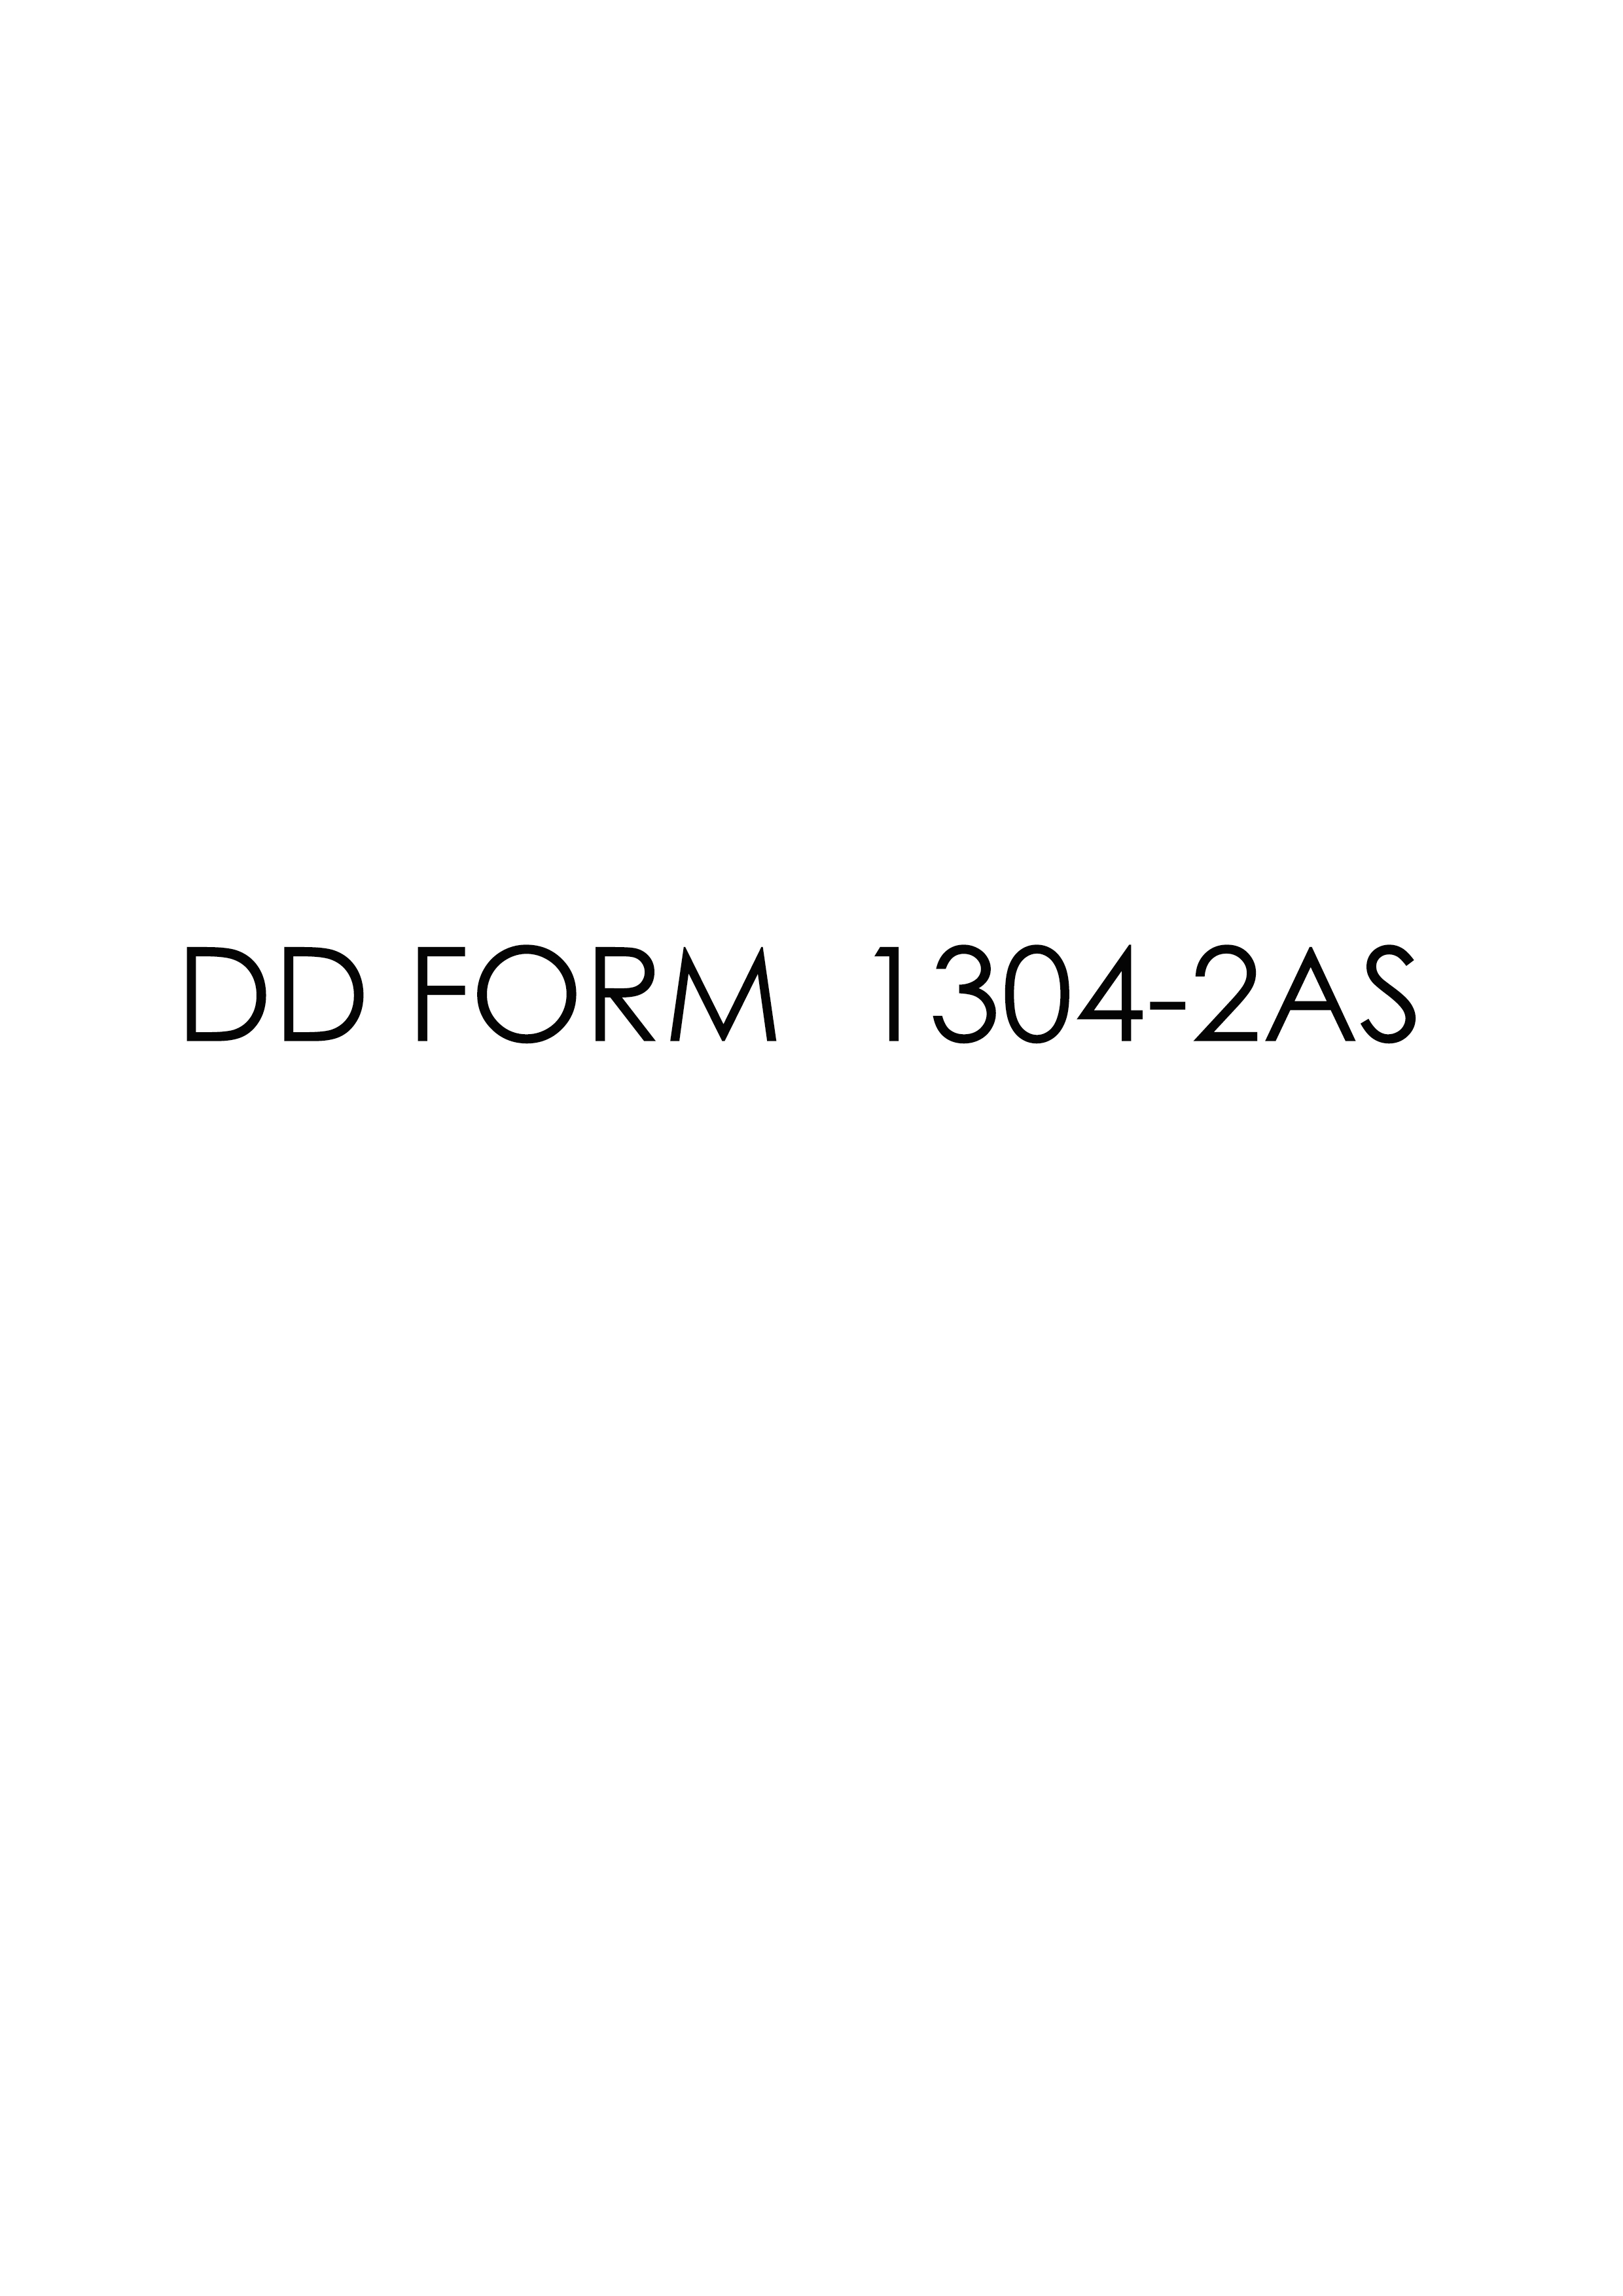 Download dd Form 1304-2AS Free